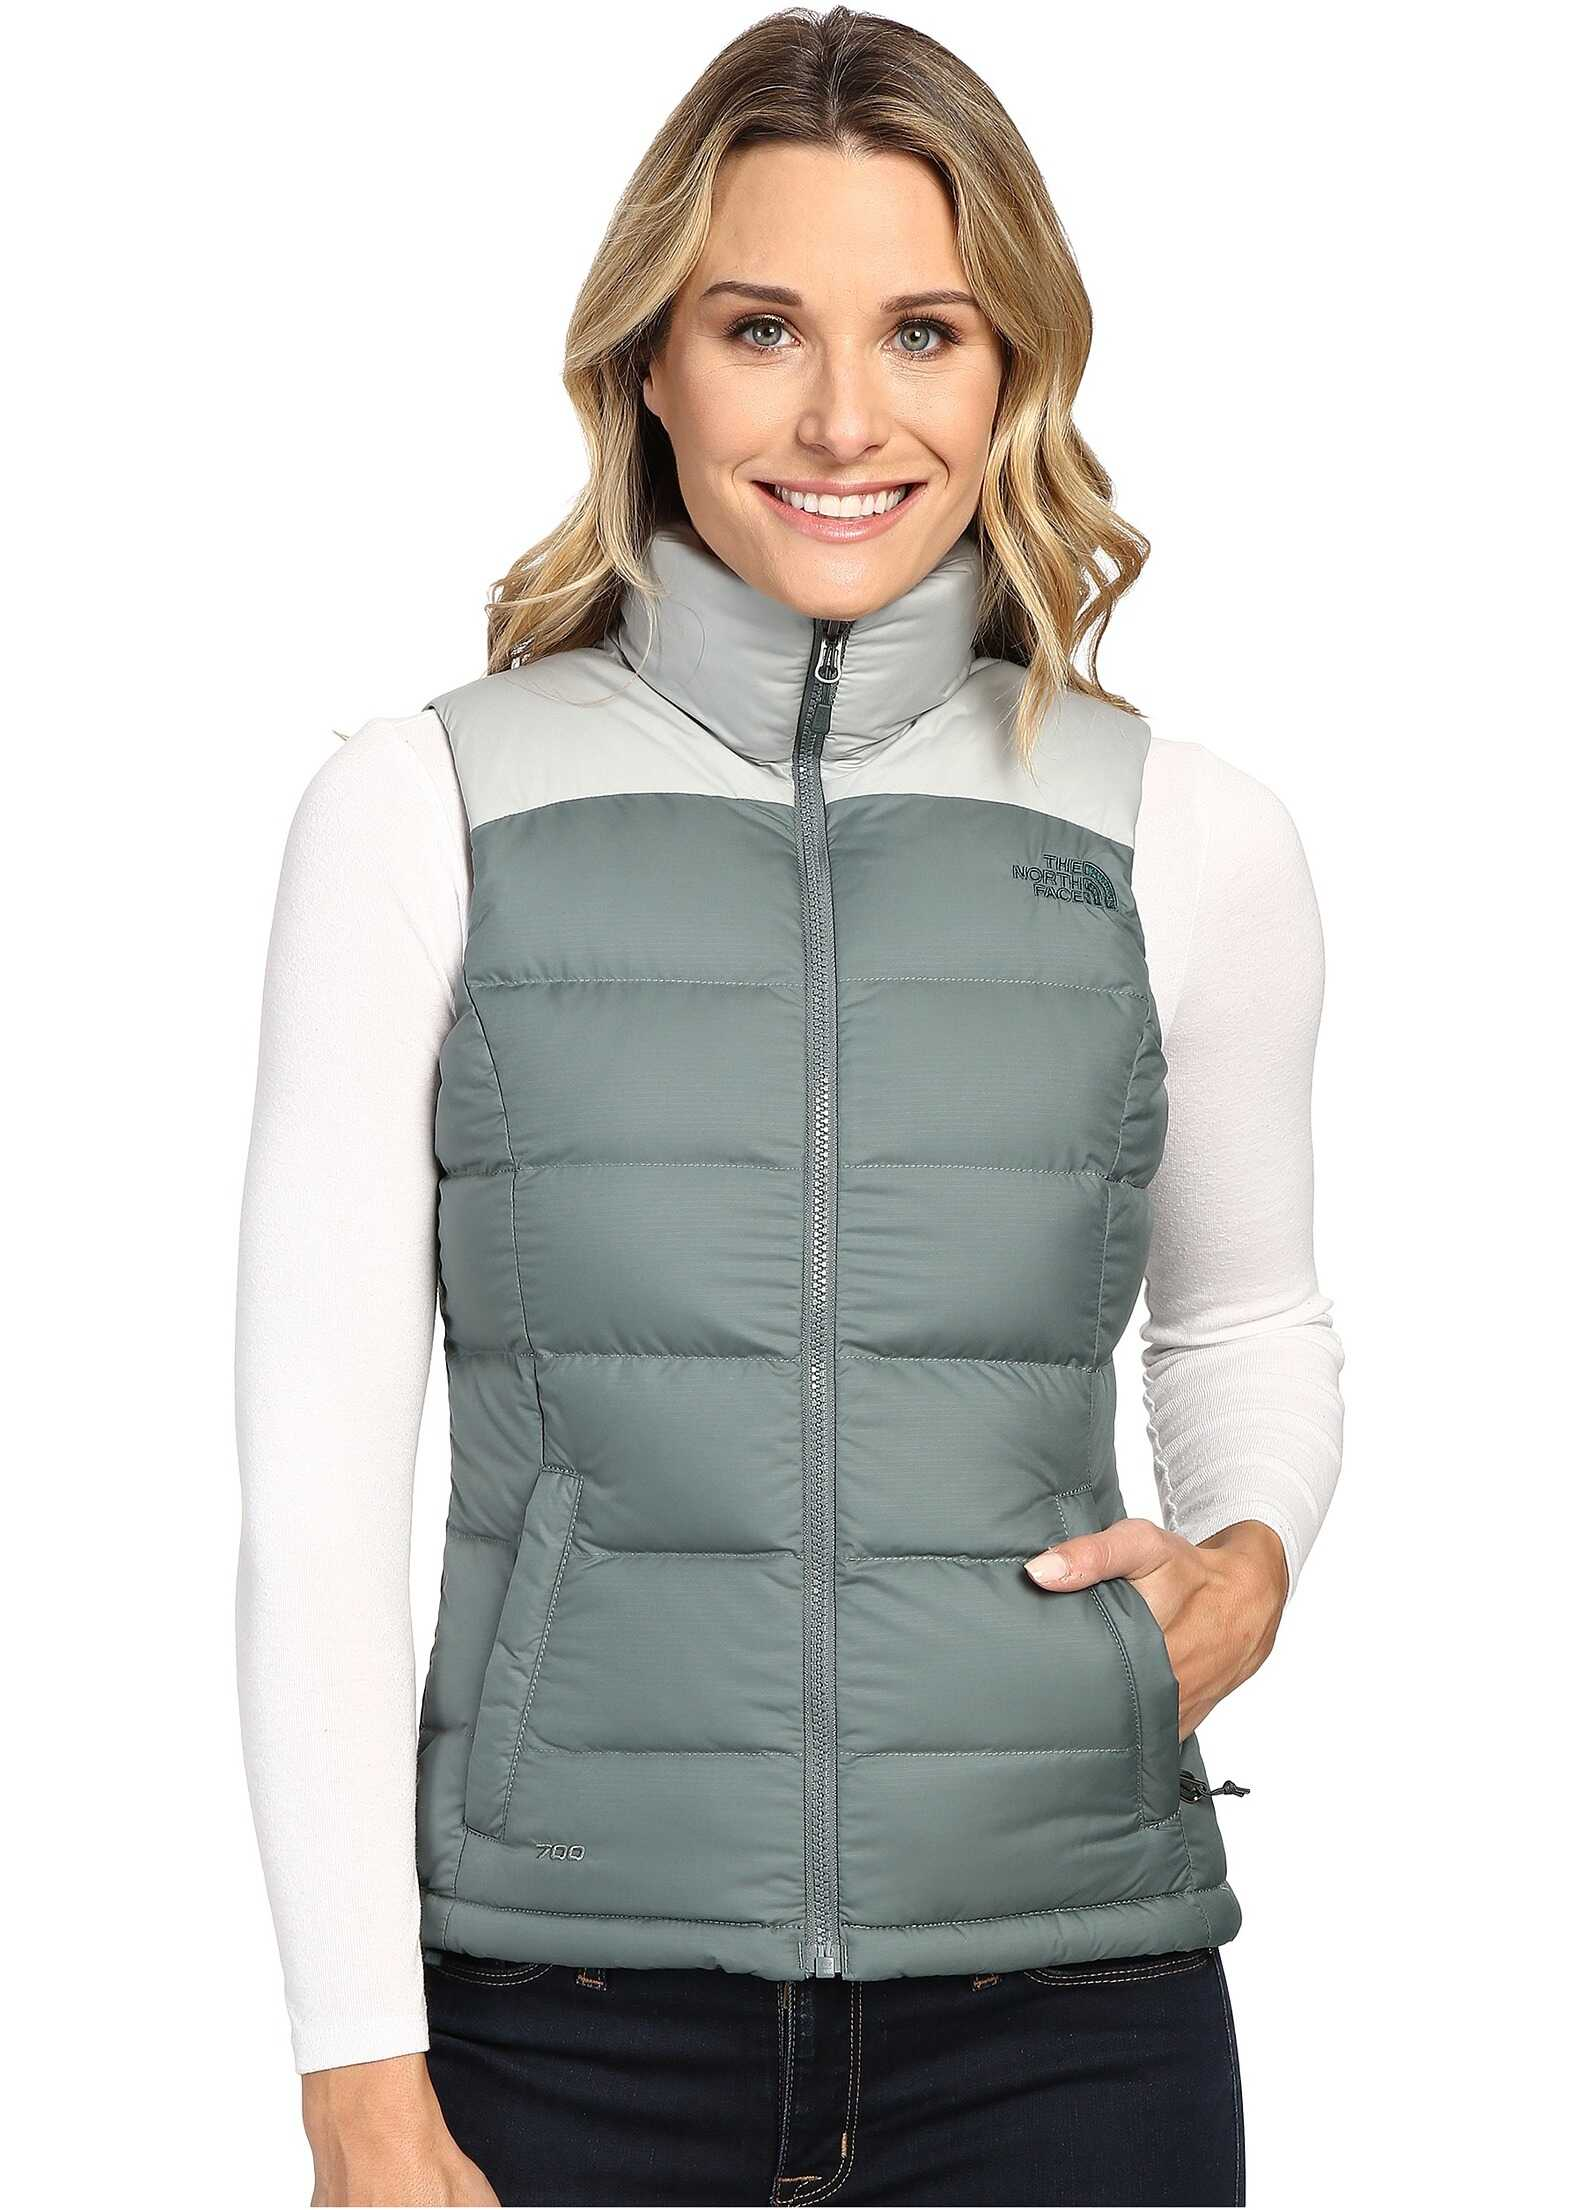 The North Face Nuptse 2 Vest Balsam Green/Wrought Iron (Prior Season)